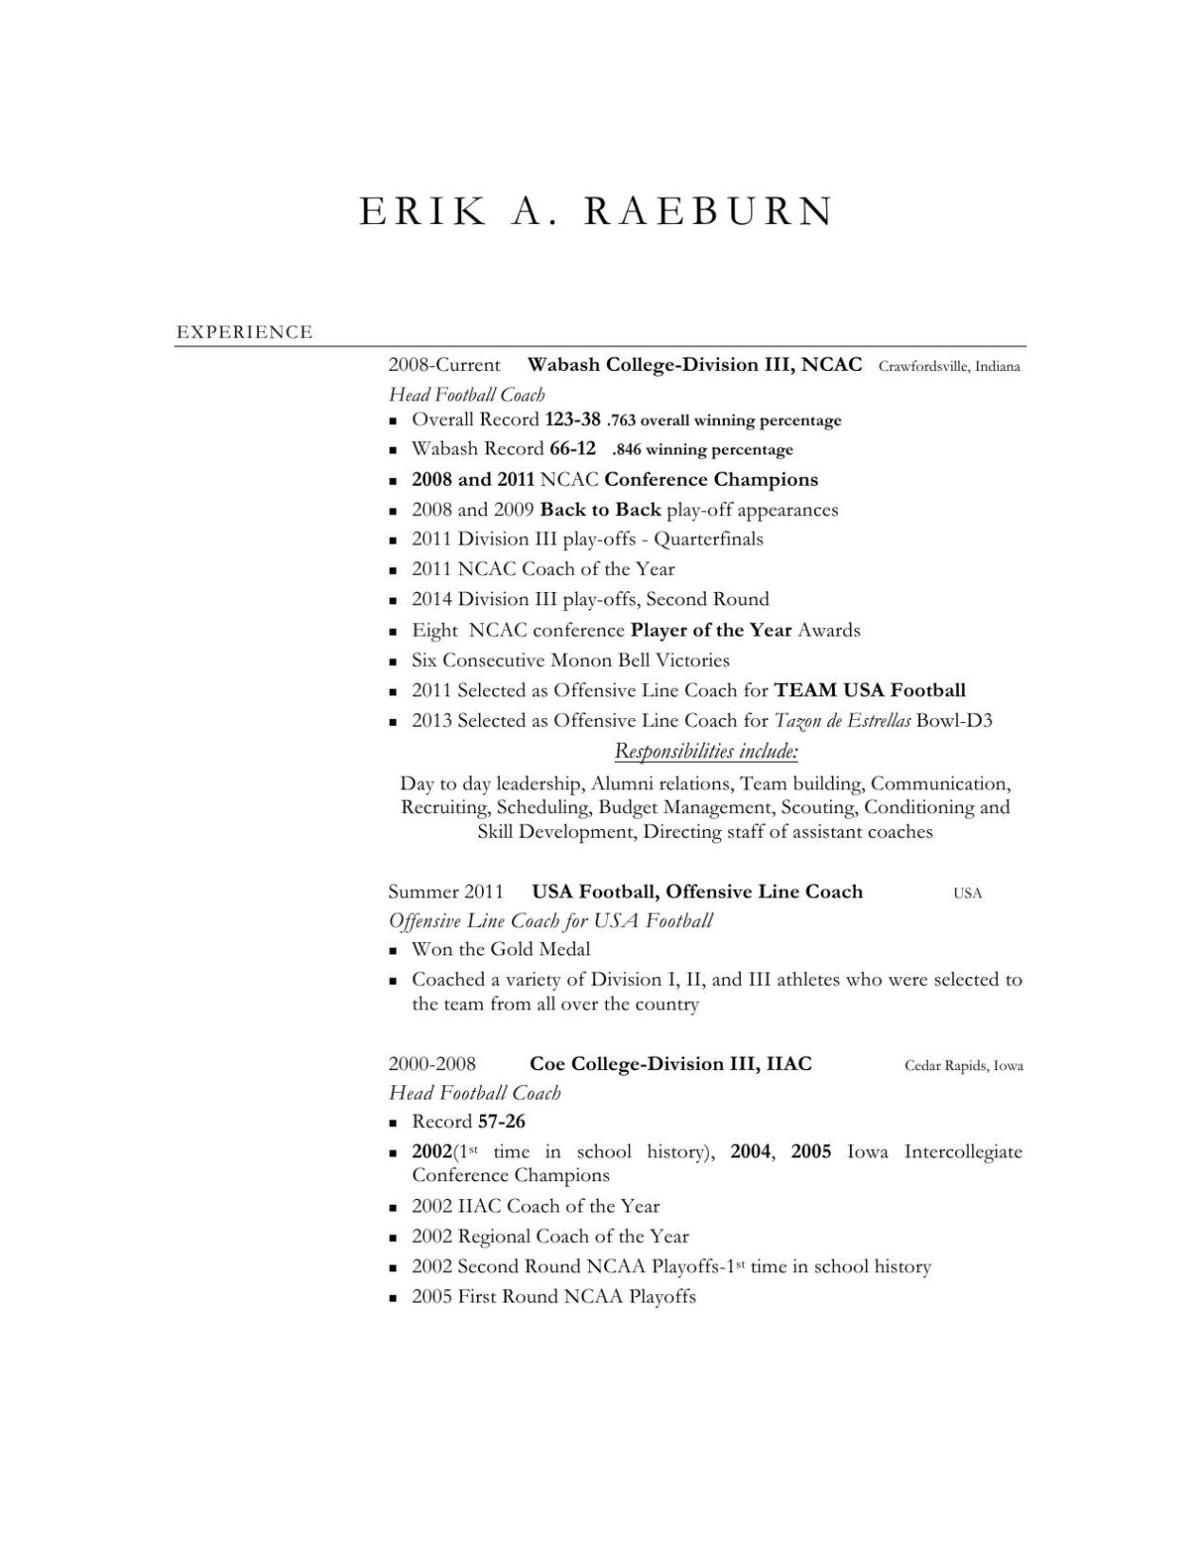 erik raeburn resume for uw whitewater head football coach candidate